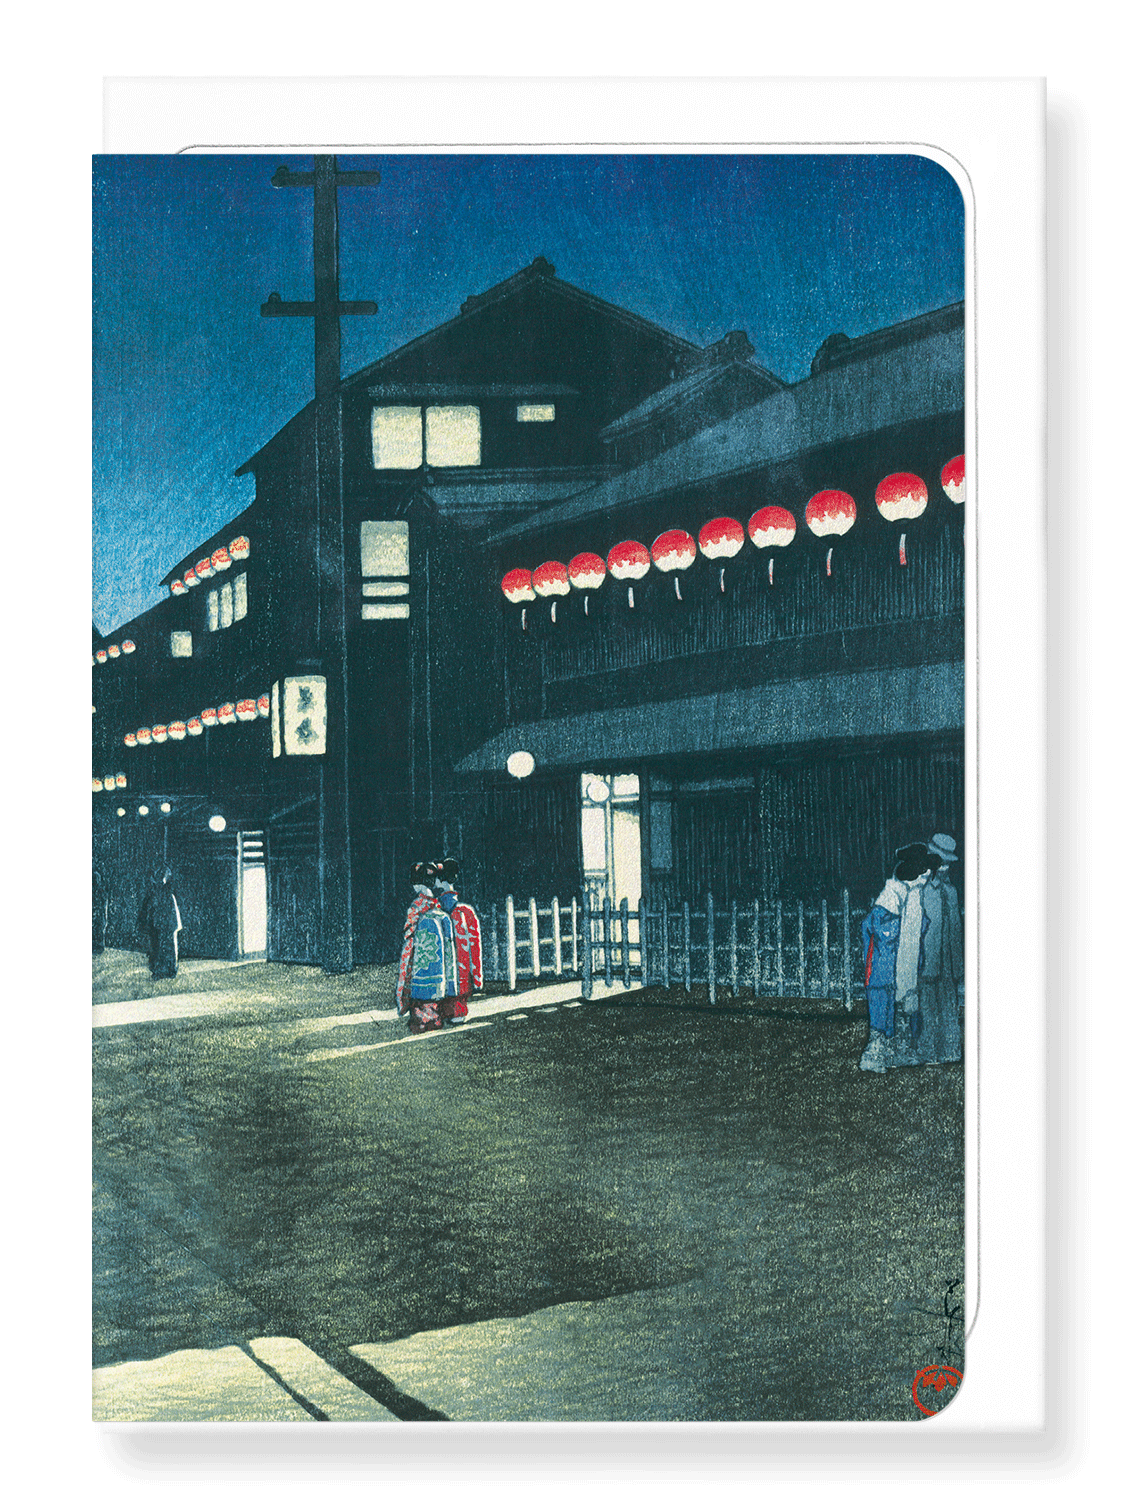 Ezen Designs - Evening at soemon-cho - Greeting Card - Front